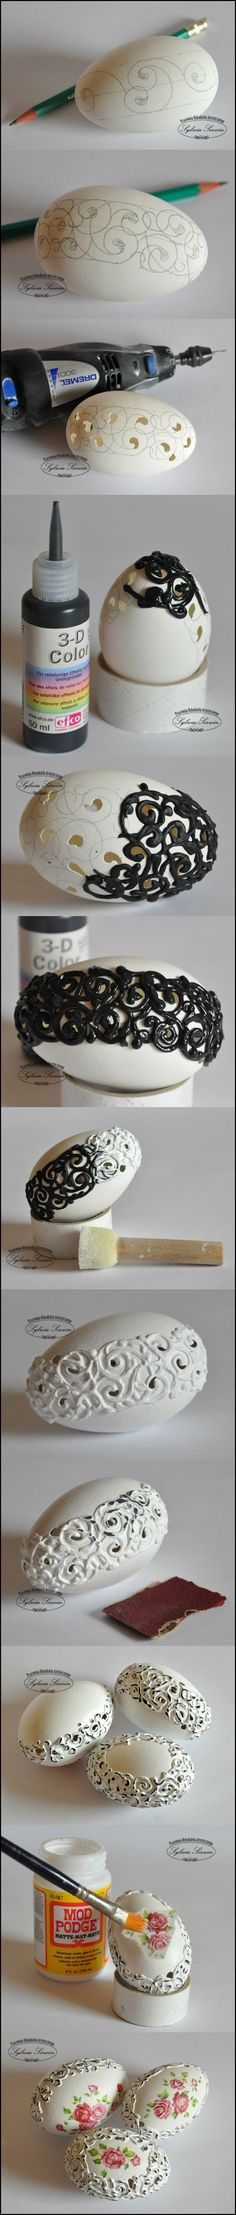 DIY/Craft Ideas :: Eggshell Decorations - love the idea! have learned wood carving and now have idea for my mini Dremel-like tool! Egg Crafts, Easter Crafts, Holiday Crafts, Diy And Crafts, Arts And Crafts, Holiday Decorations, Upcycled Crafts, Christmas Decor, Egg Shell Art